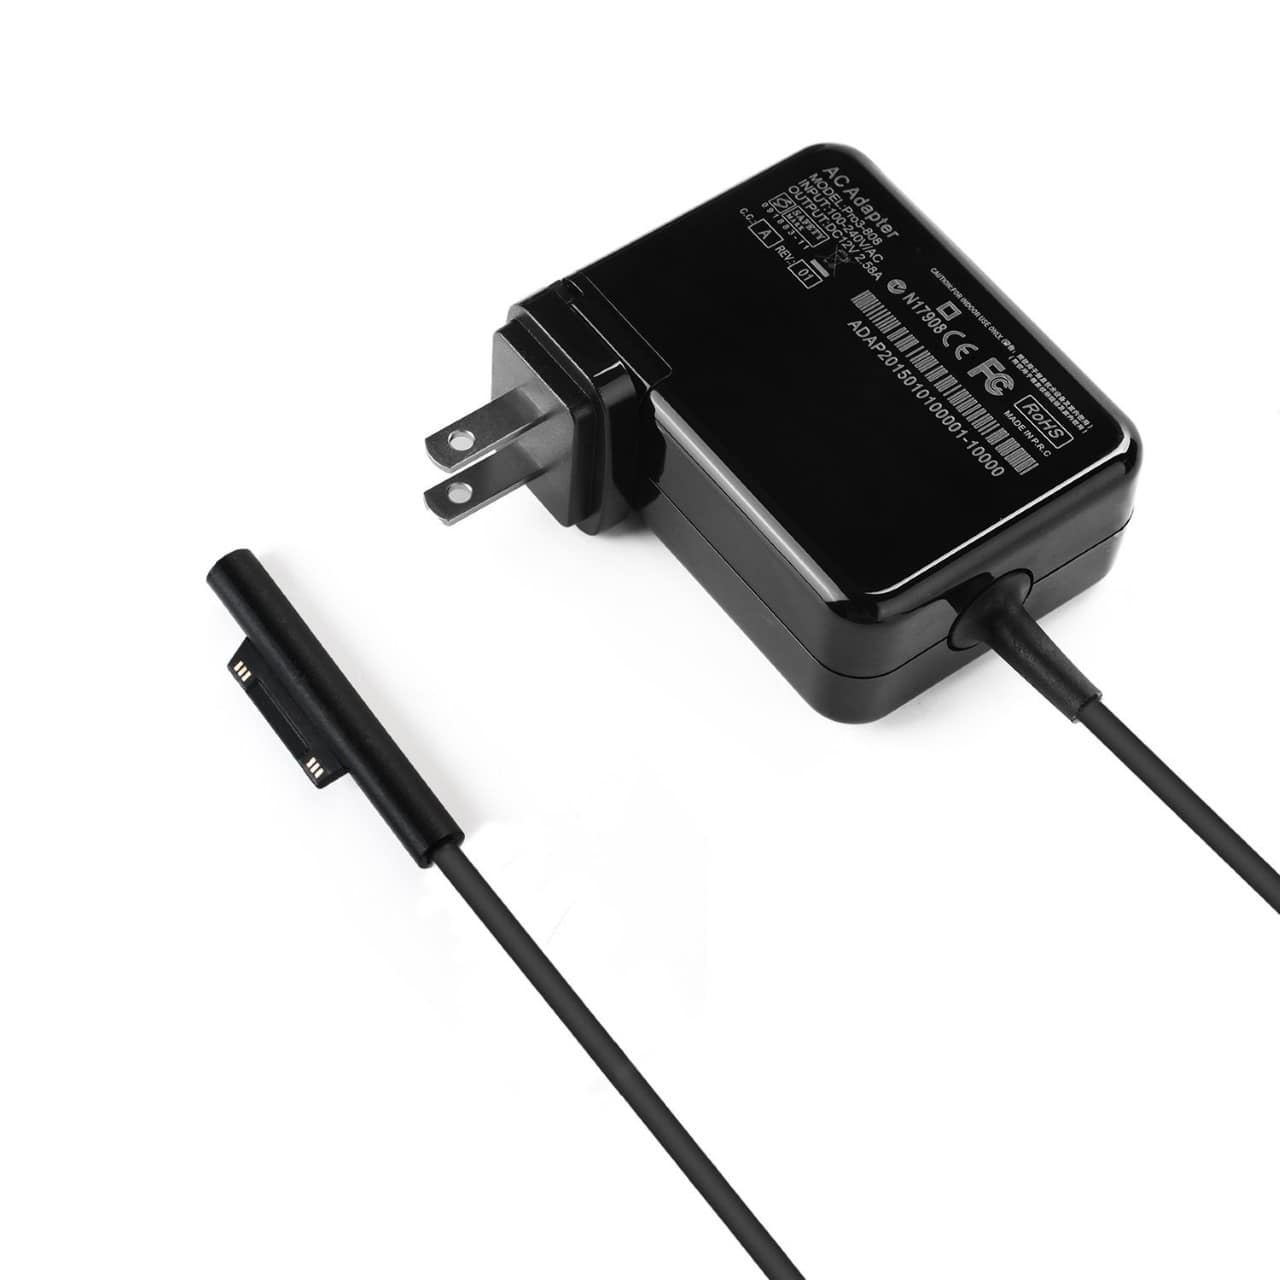 Surface Power Supply Adapter (36W/12V/2.58A) w/ 5ft Power Cord $12.91 FS w/Prime